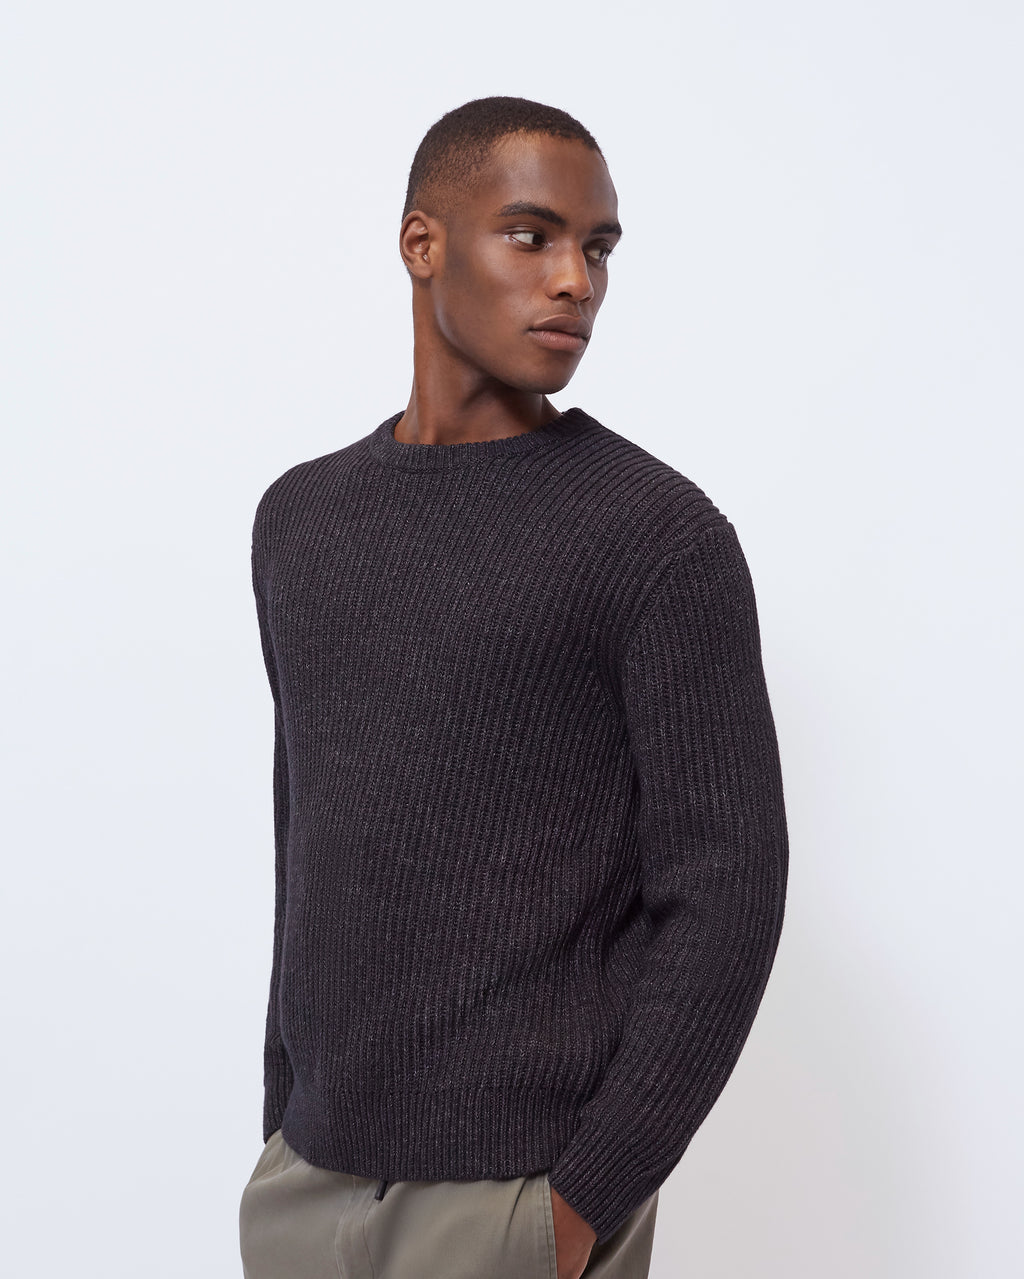 The Roux Sweater in Black